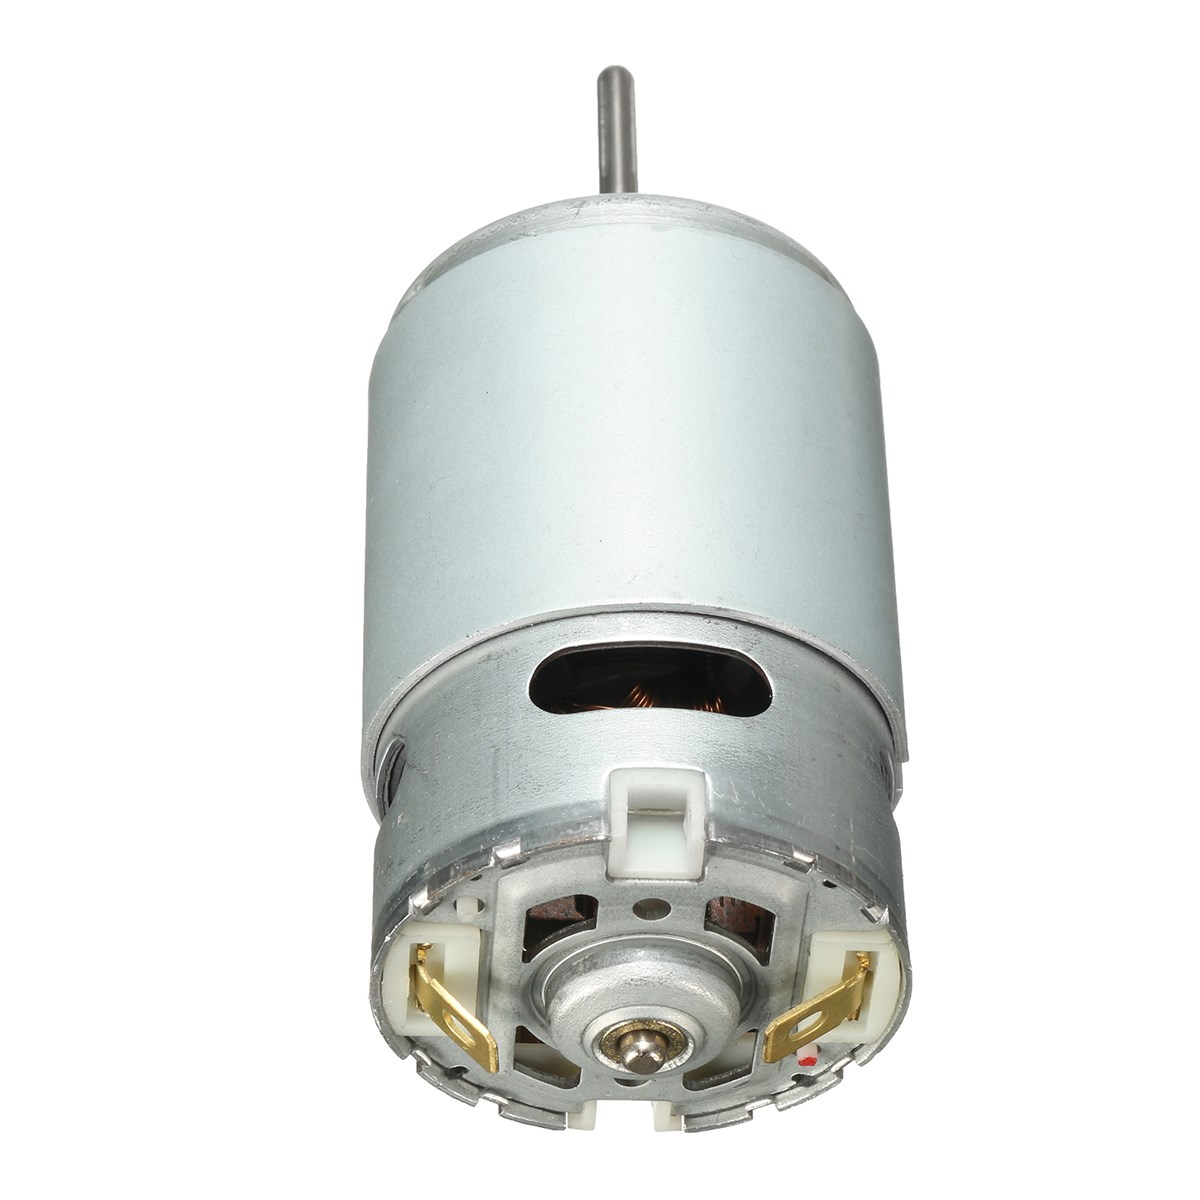 Best price 1pcs dc12 24v 555 ball bearing electric motor for Electric motor bearings suppliers